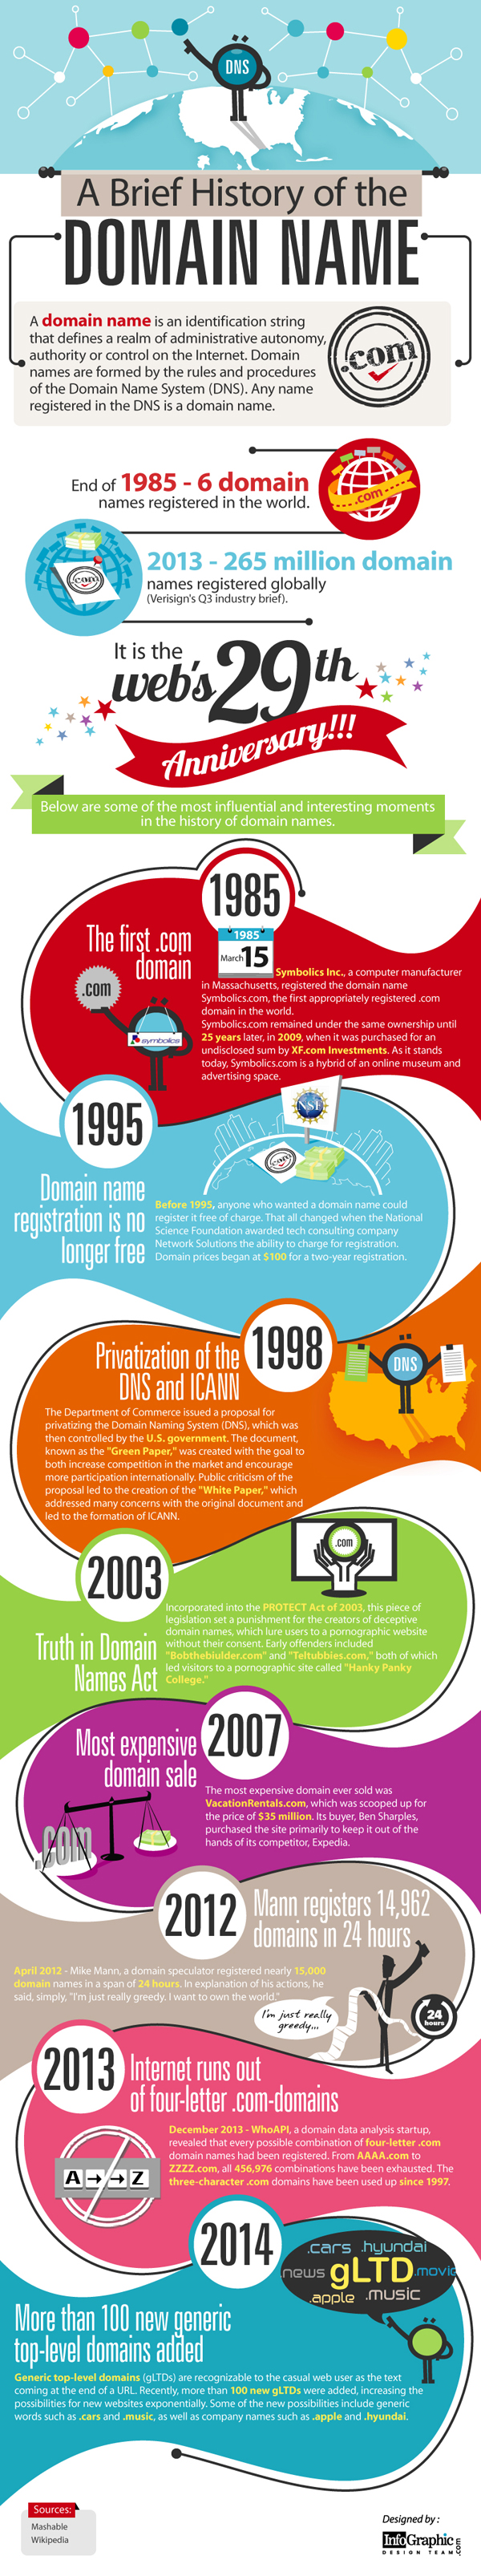 A Brief History of the Domain Name